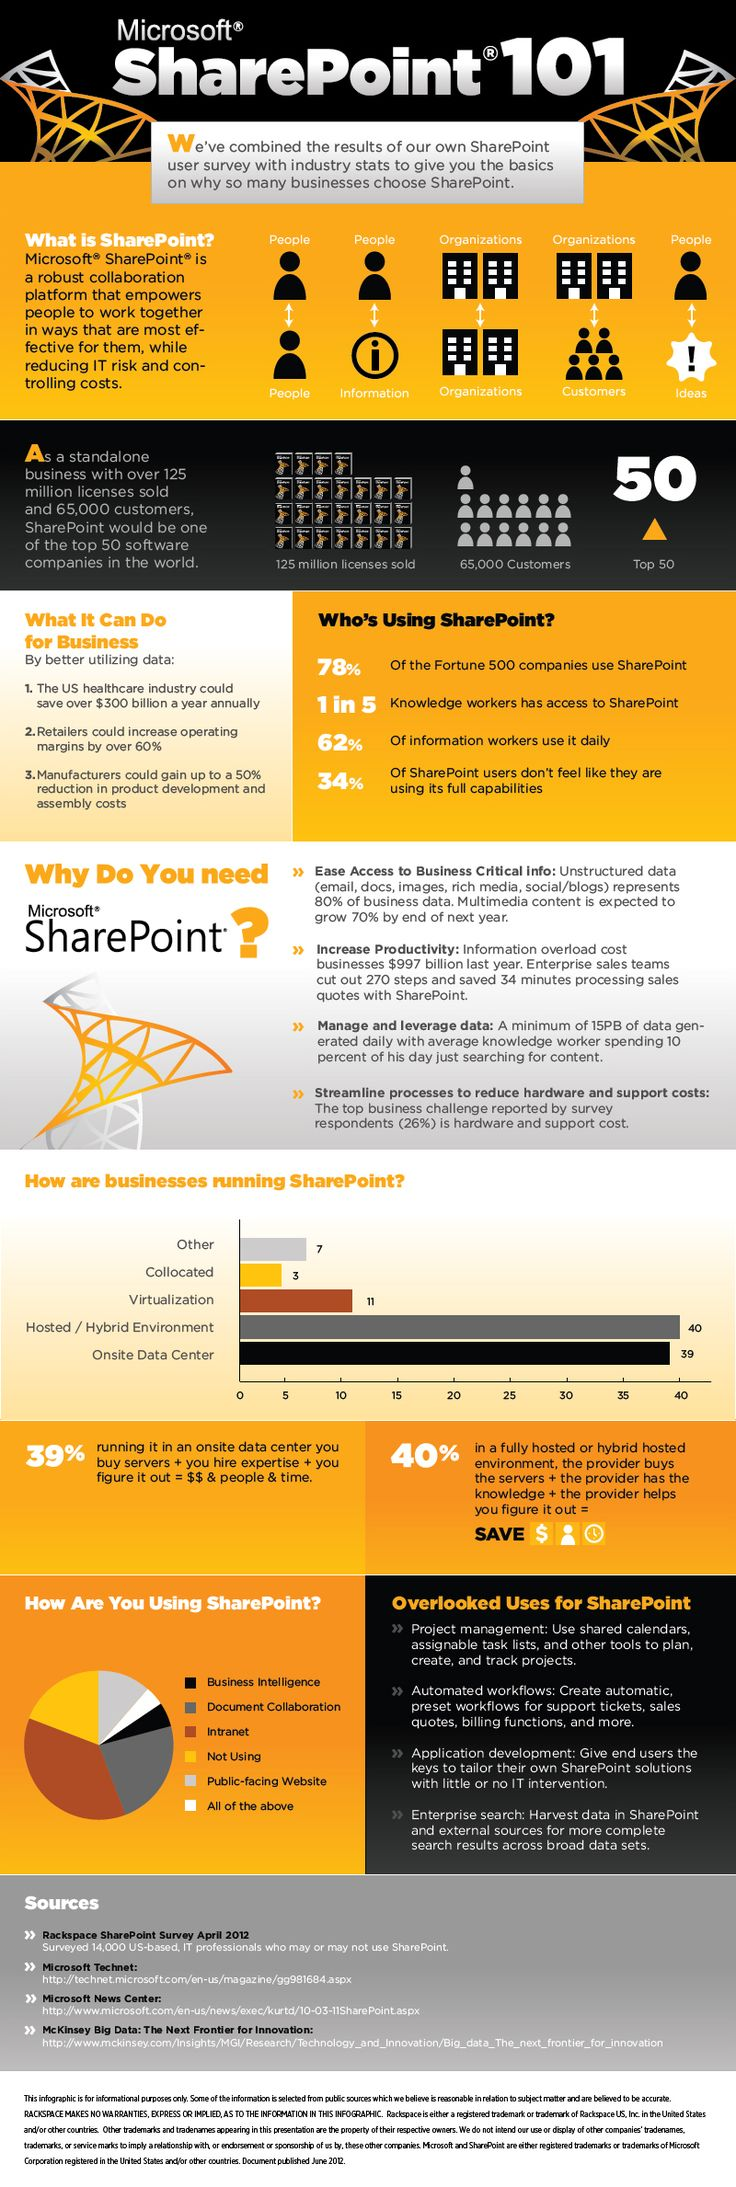 The Official Rackspace Blog - Some Important Points About SharePoint [Infographic]